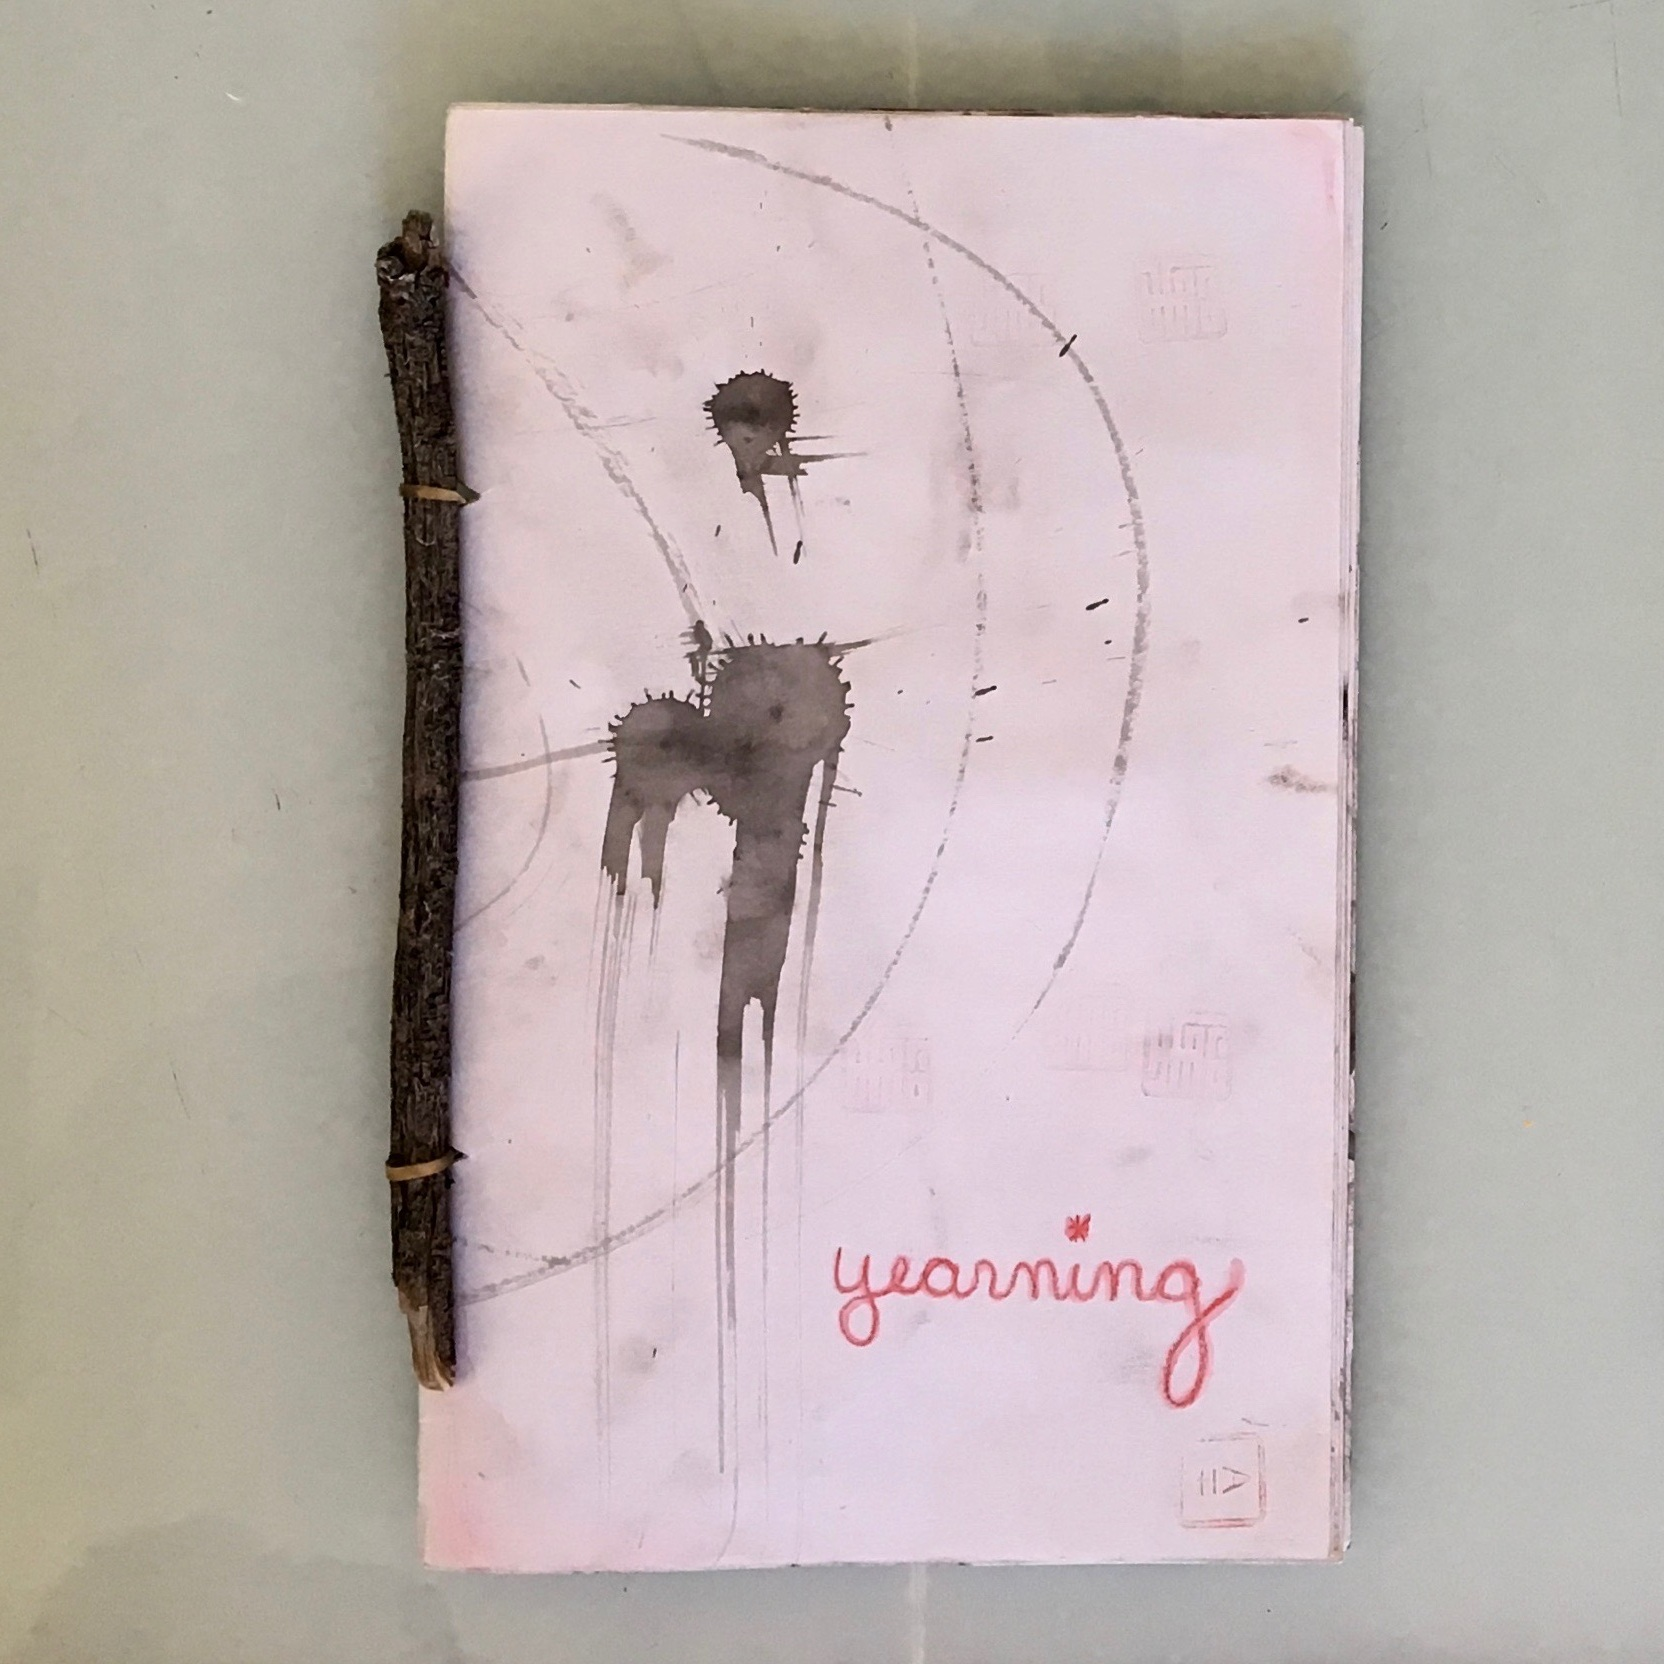 Yearning - An Illustrated Poem